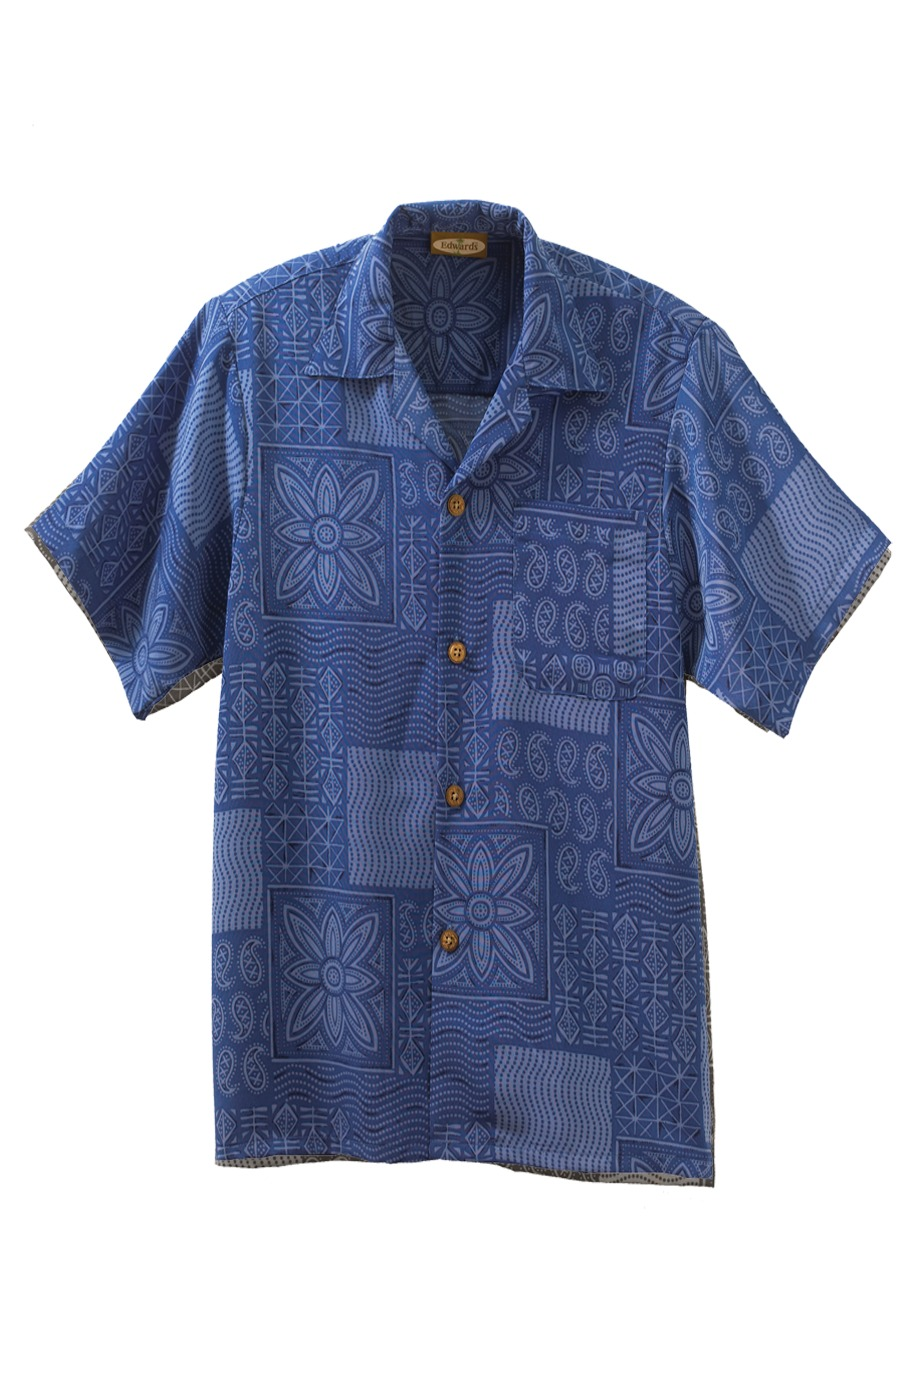 Edwards Garment 1019 - South Seas Geometric Print Camp ...